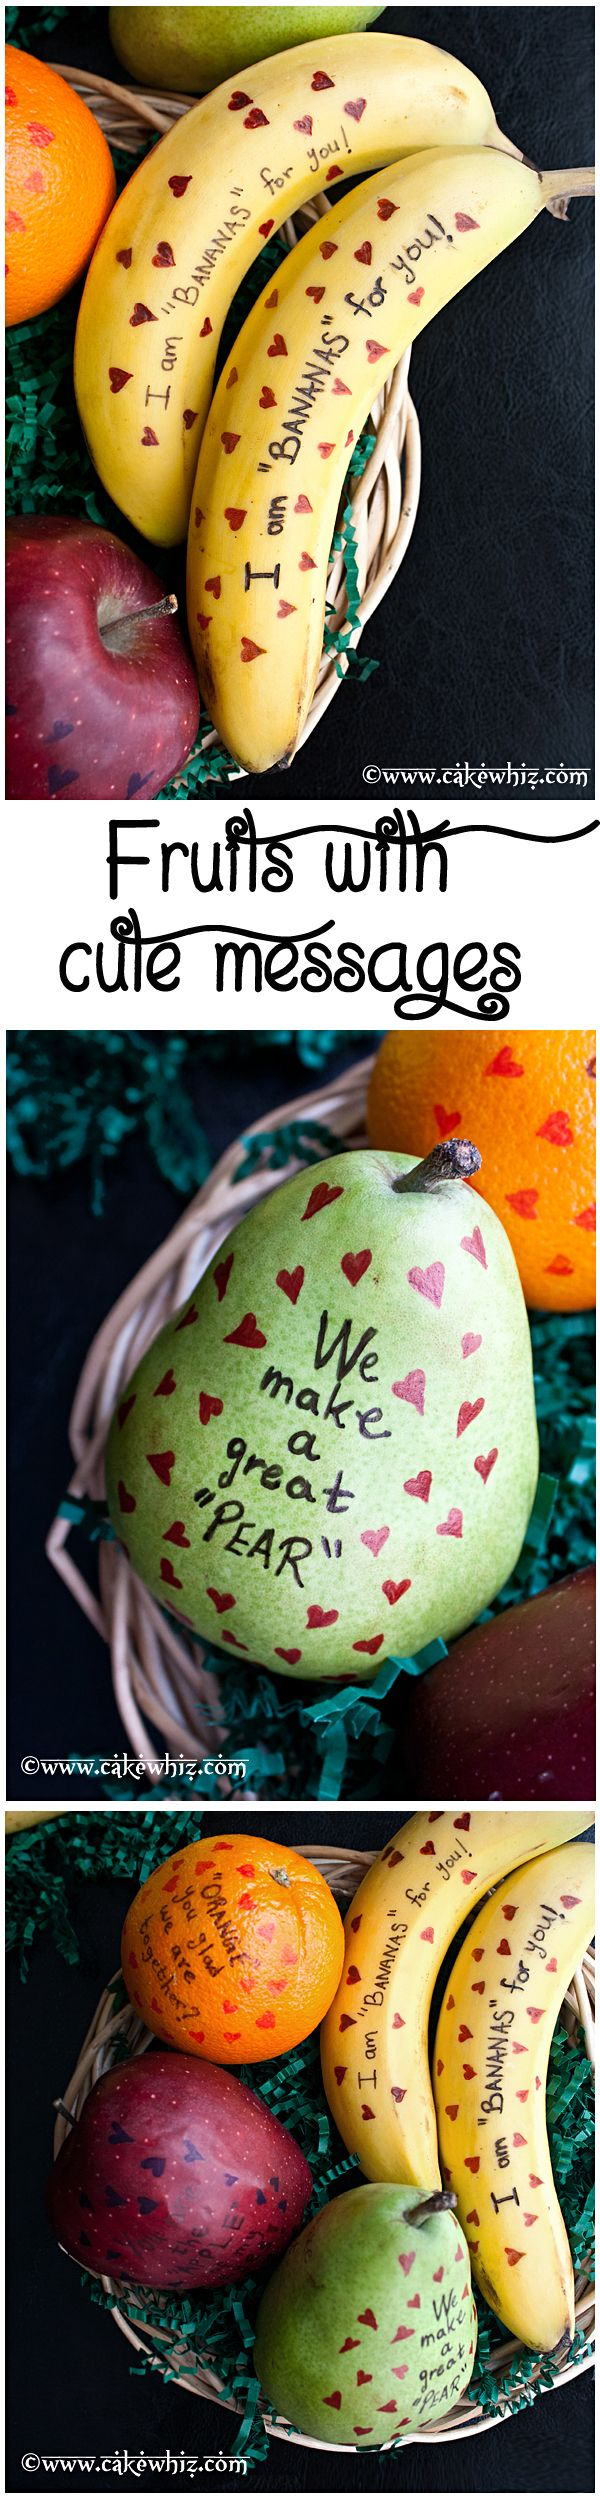 Fruits with Cute Messages